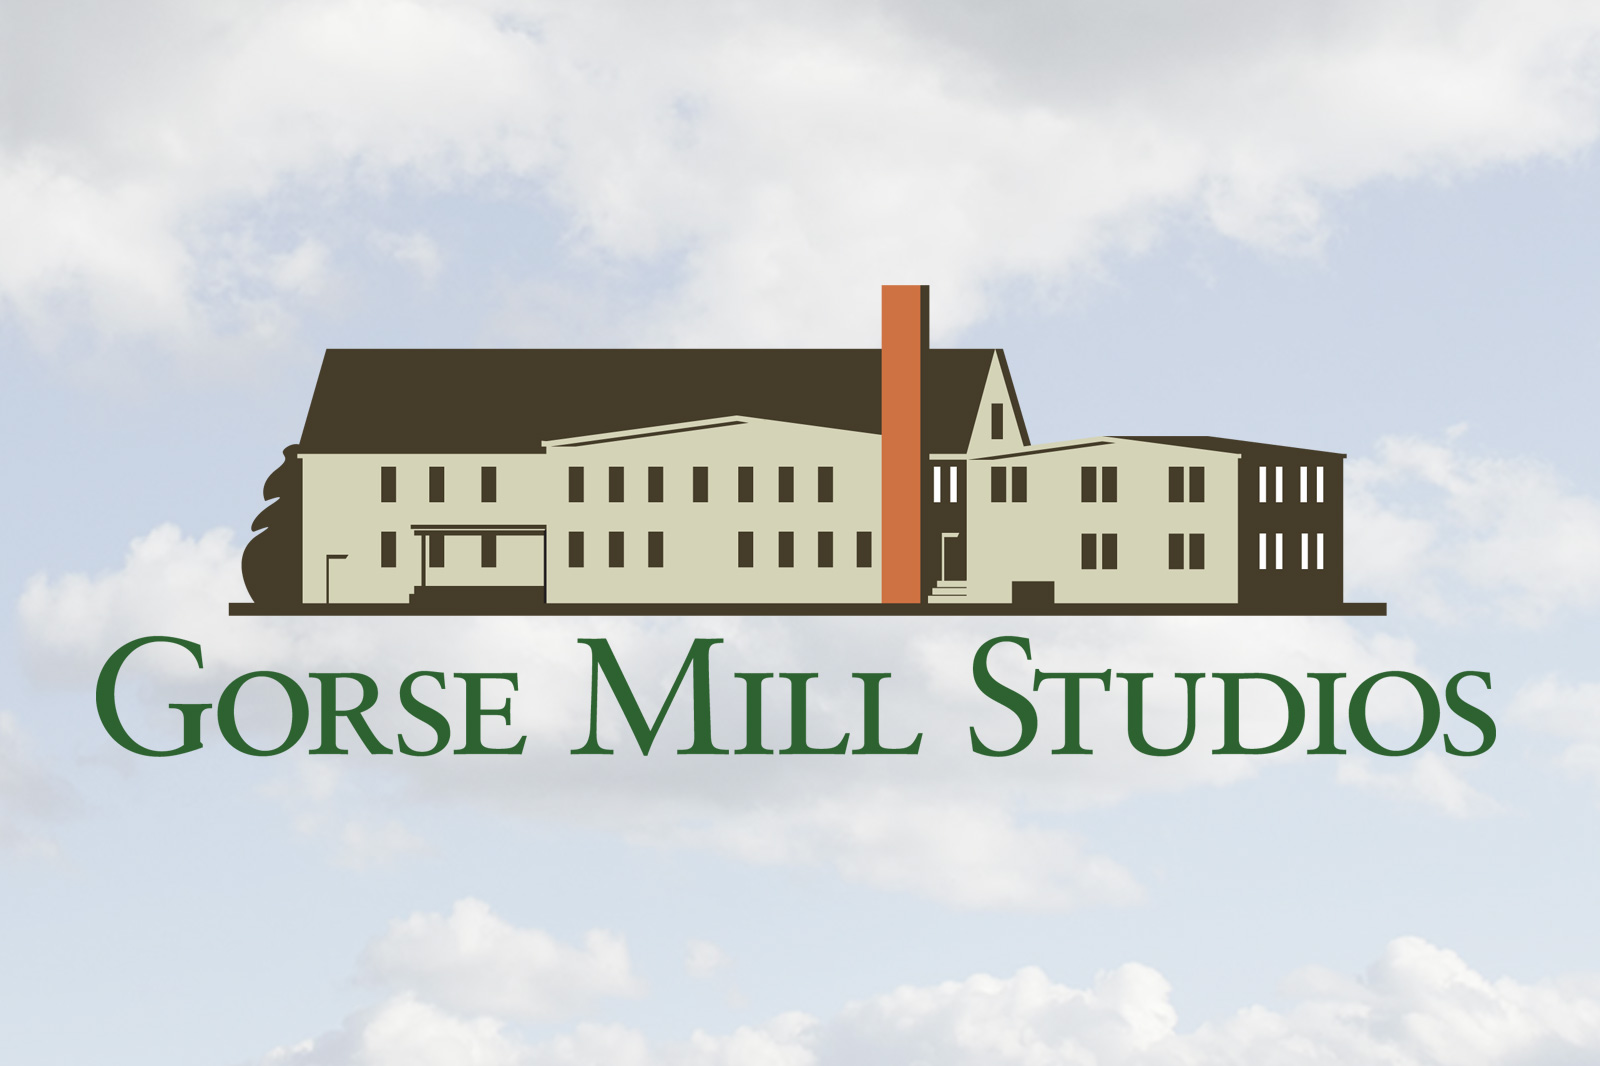 Gorse Mill Studios brand and logo